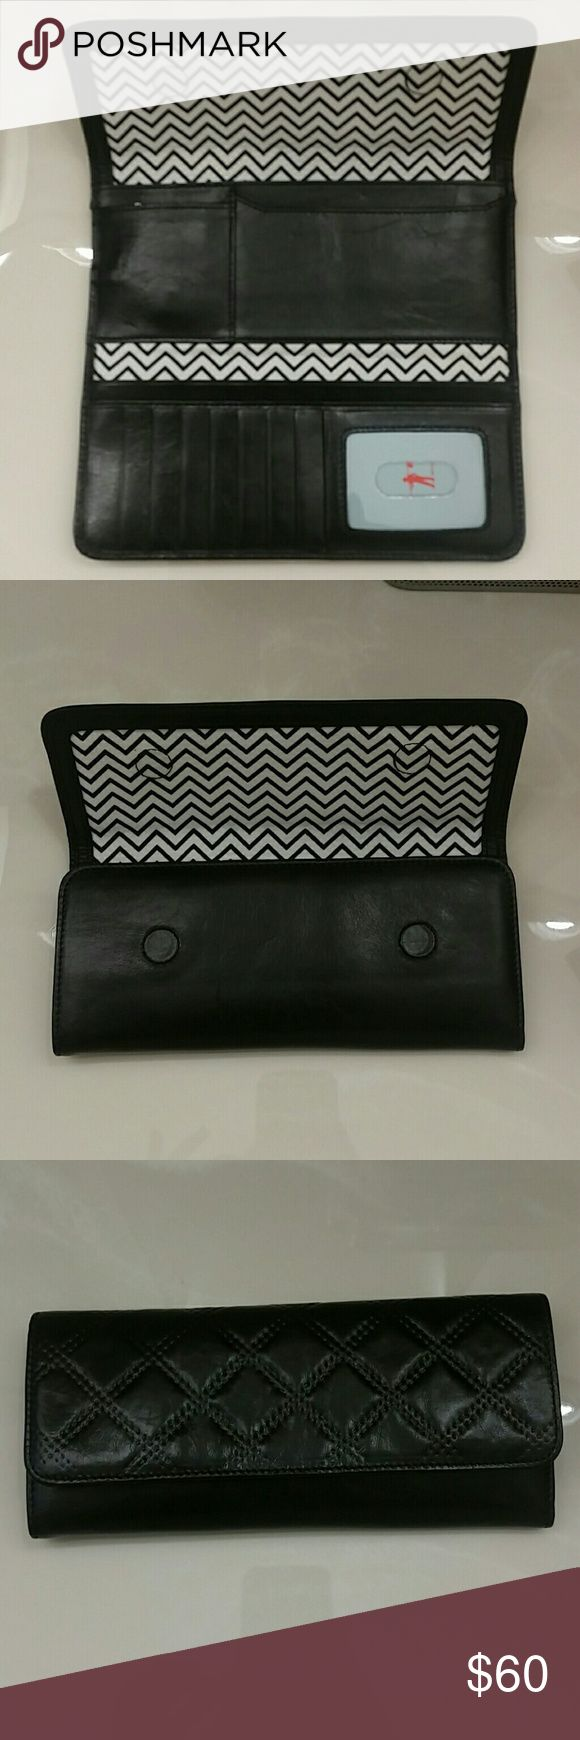 FINAL PRICE $$ Hobo wallet Brand new. Hobo. Excellent quality wallet HOBO Other